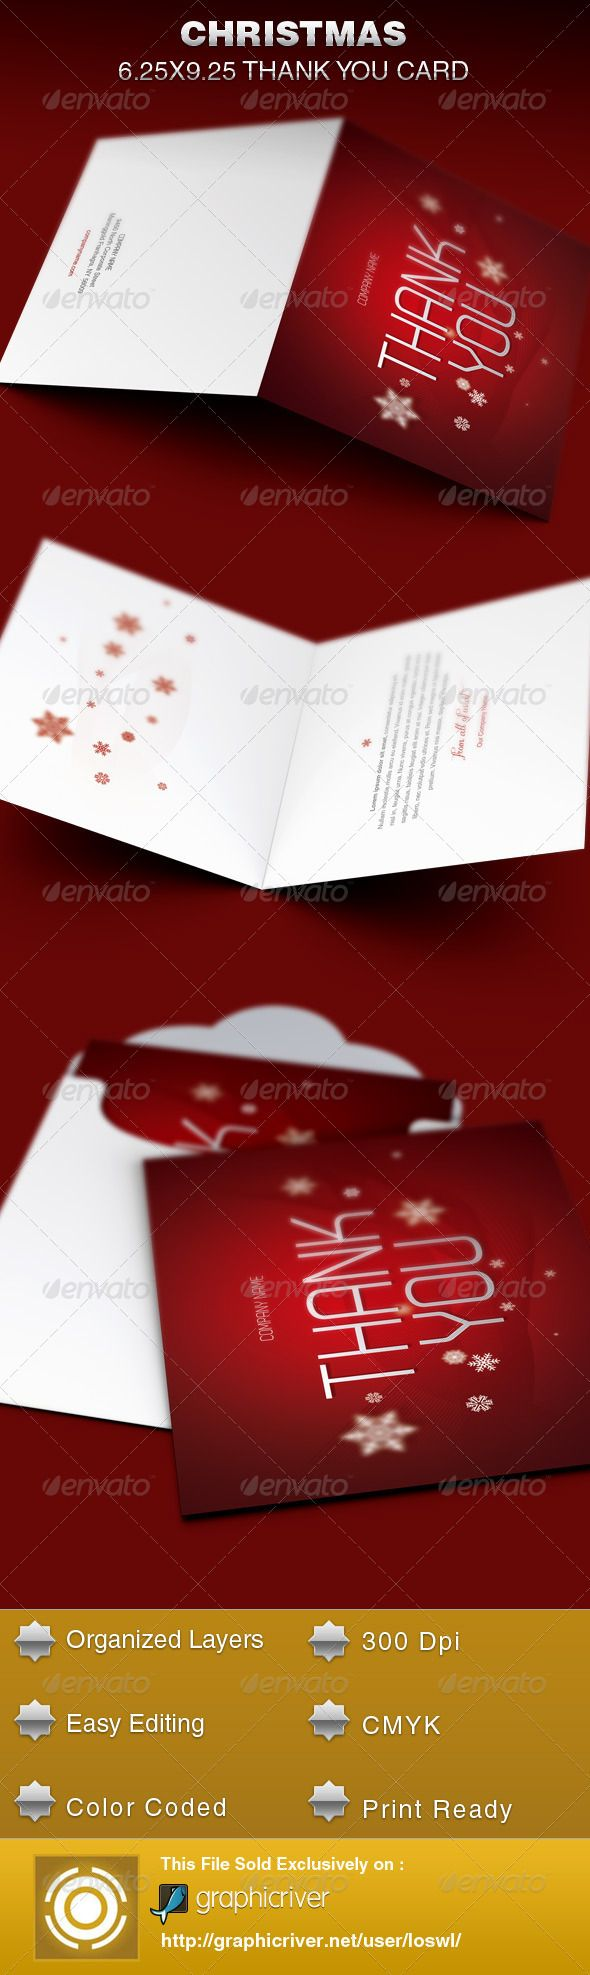 17 best images about print templates fonts flyer christmas thank you card template